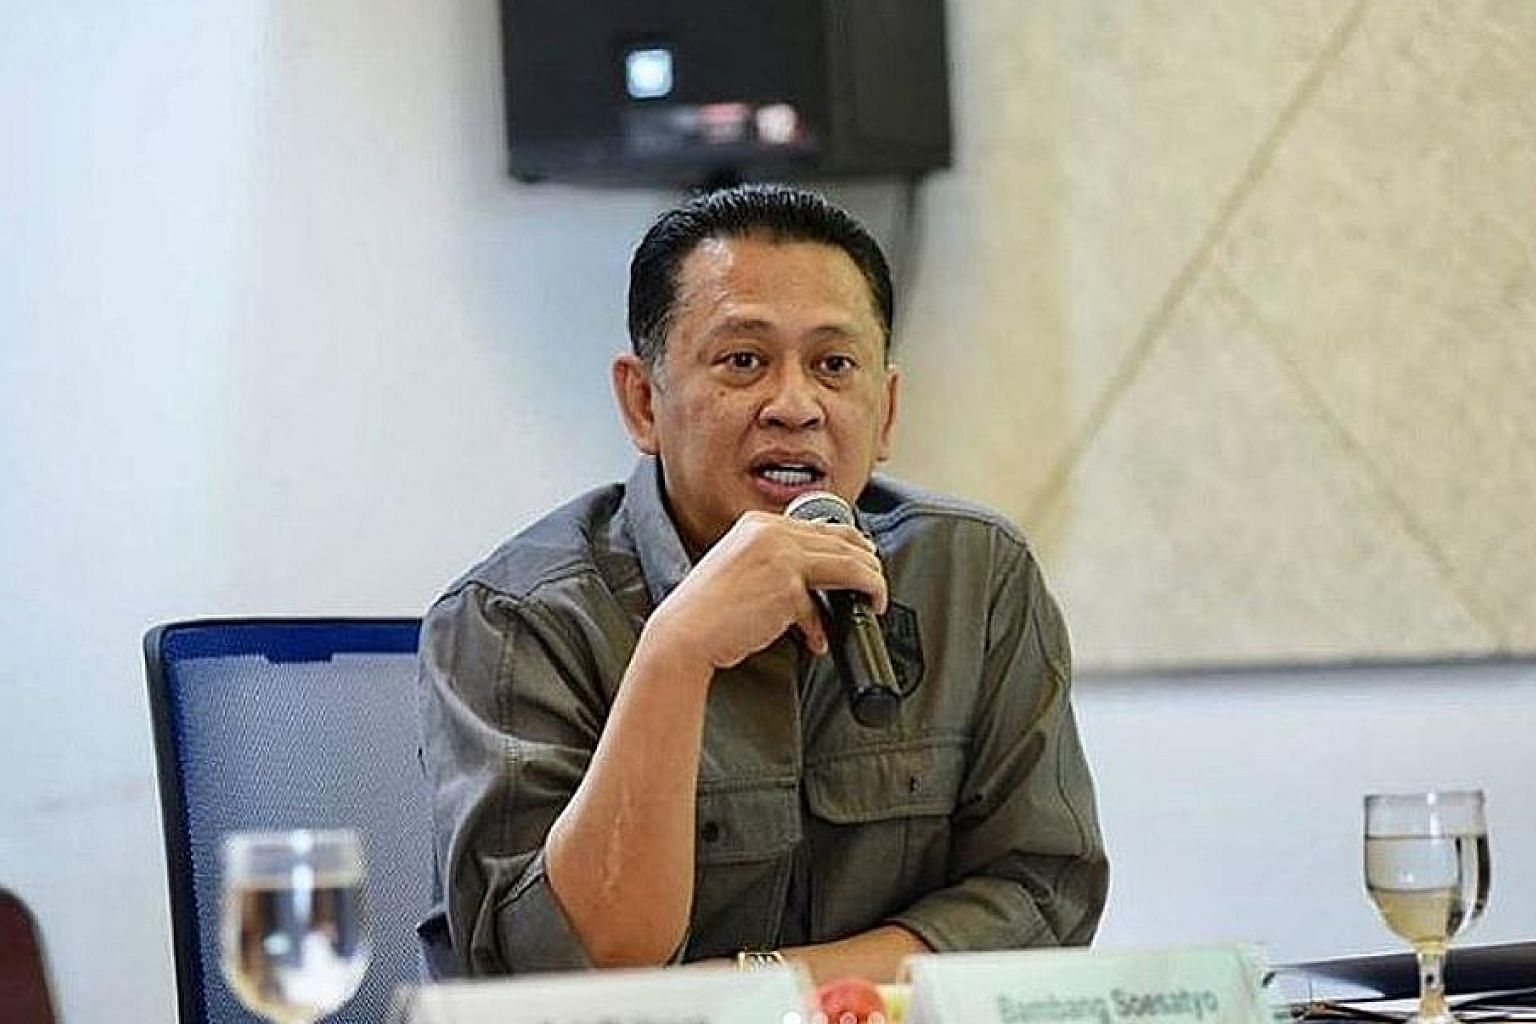 Mr Bambang Soesatyo, the new Speaker of the People's Consultative Assembly, was previously Speaker of the House of Representatives. PHOTO: BAMBANG SOESATYO/INSTAGRAM